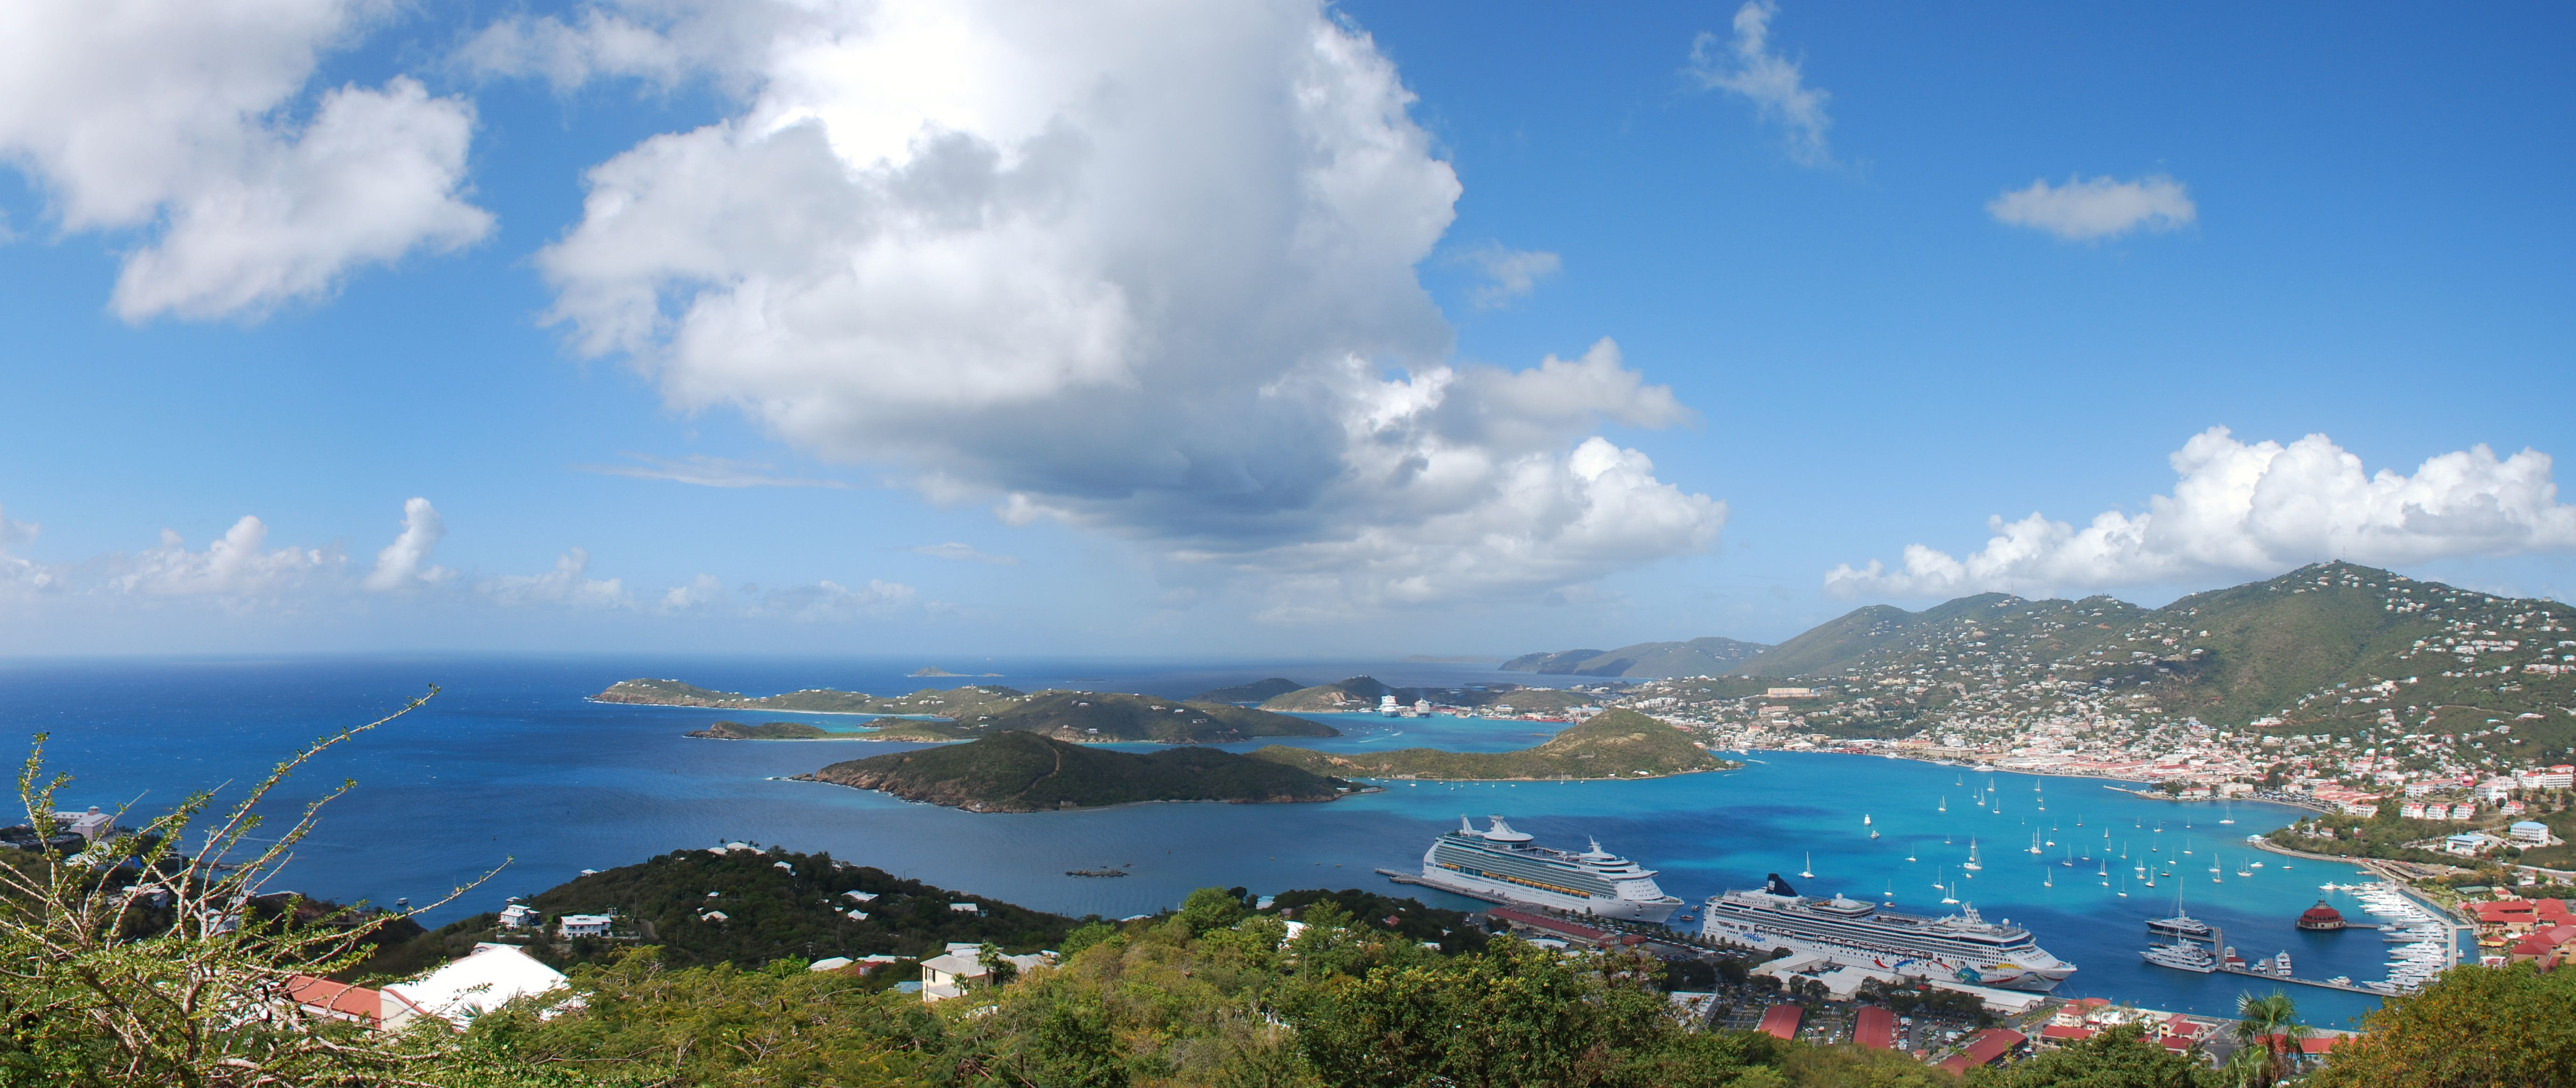 Taking in History in St Thomas Talked